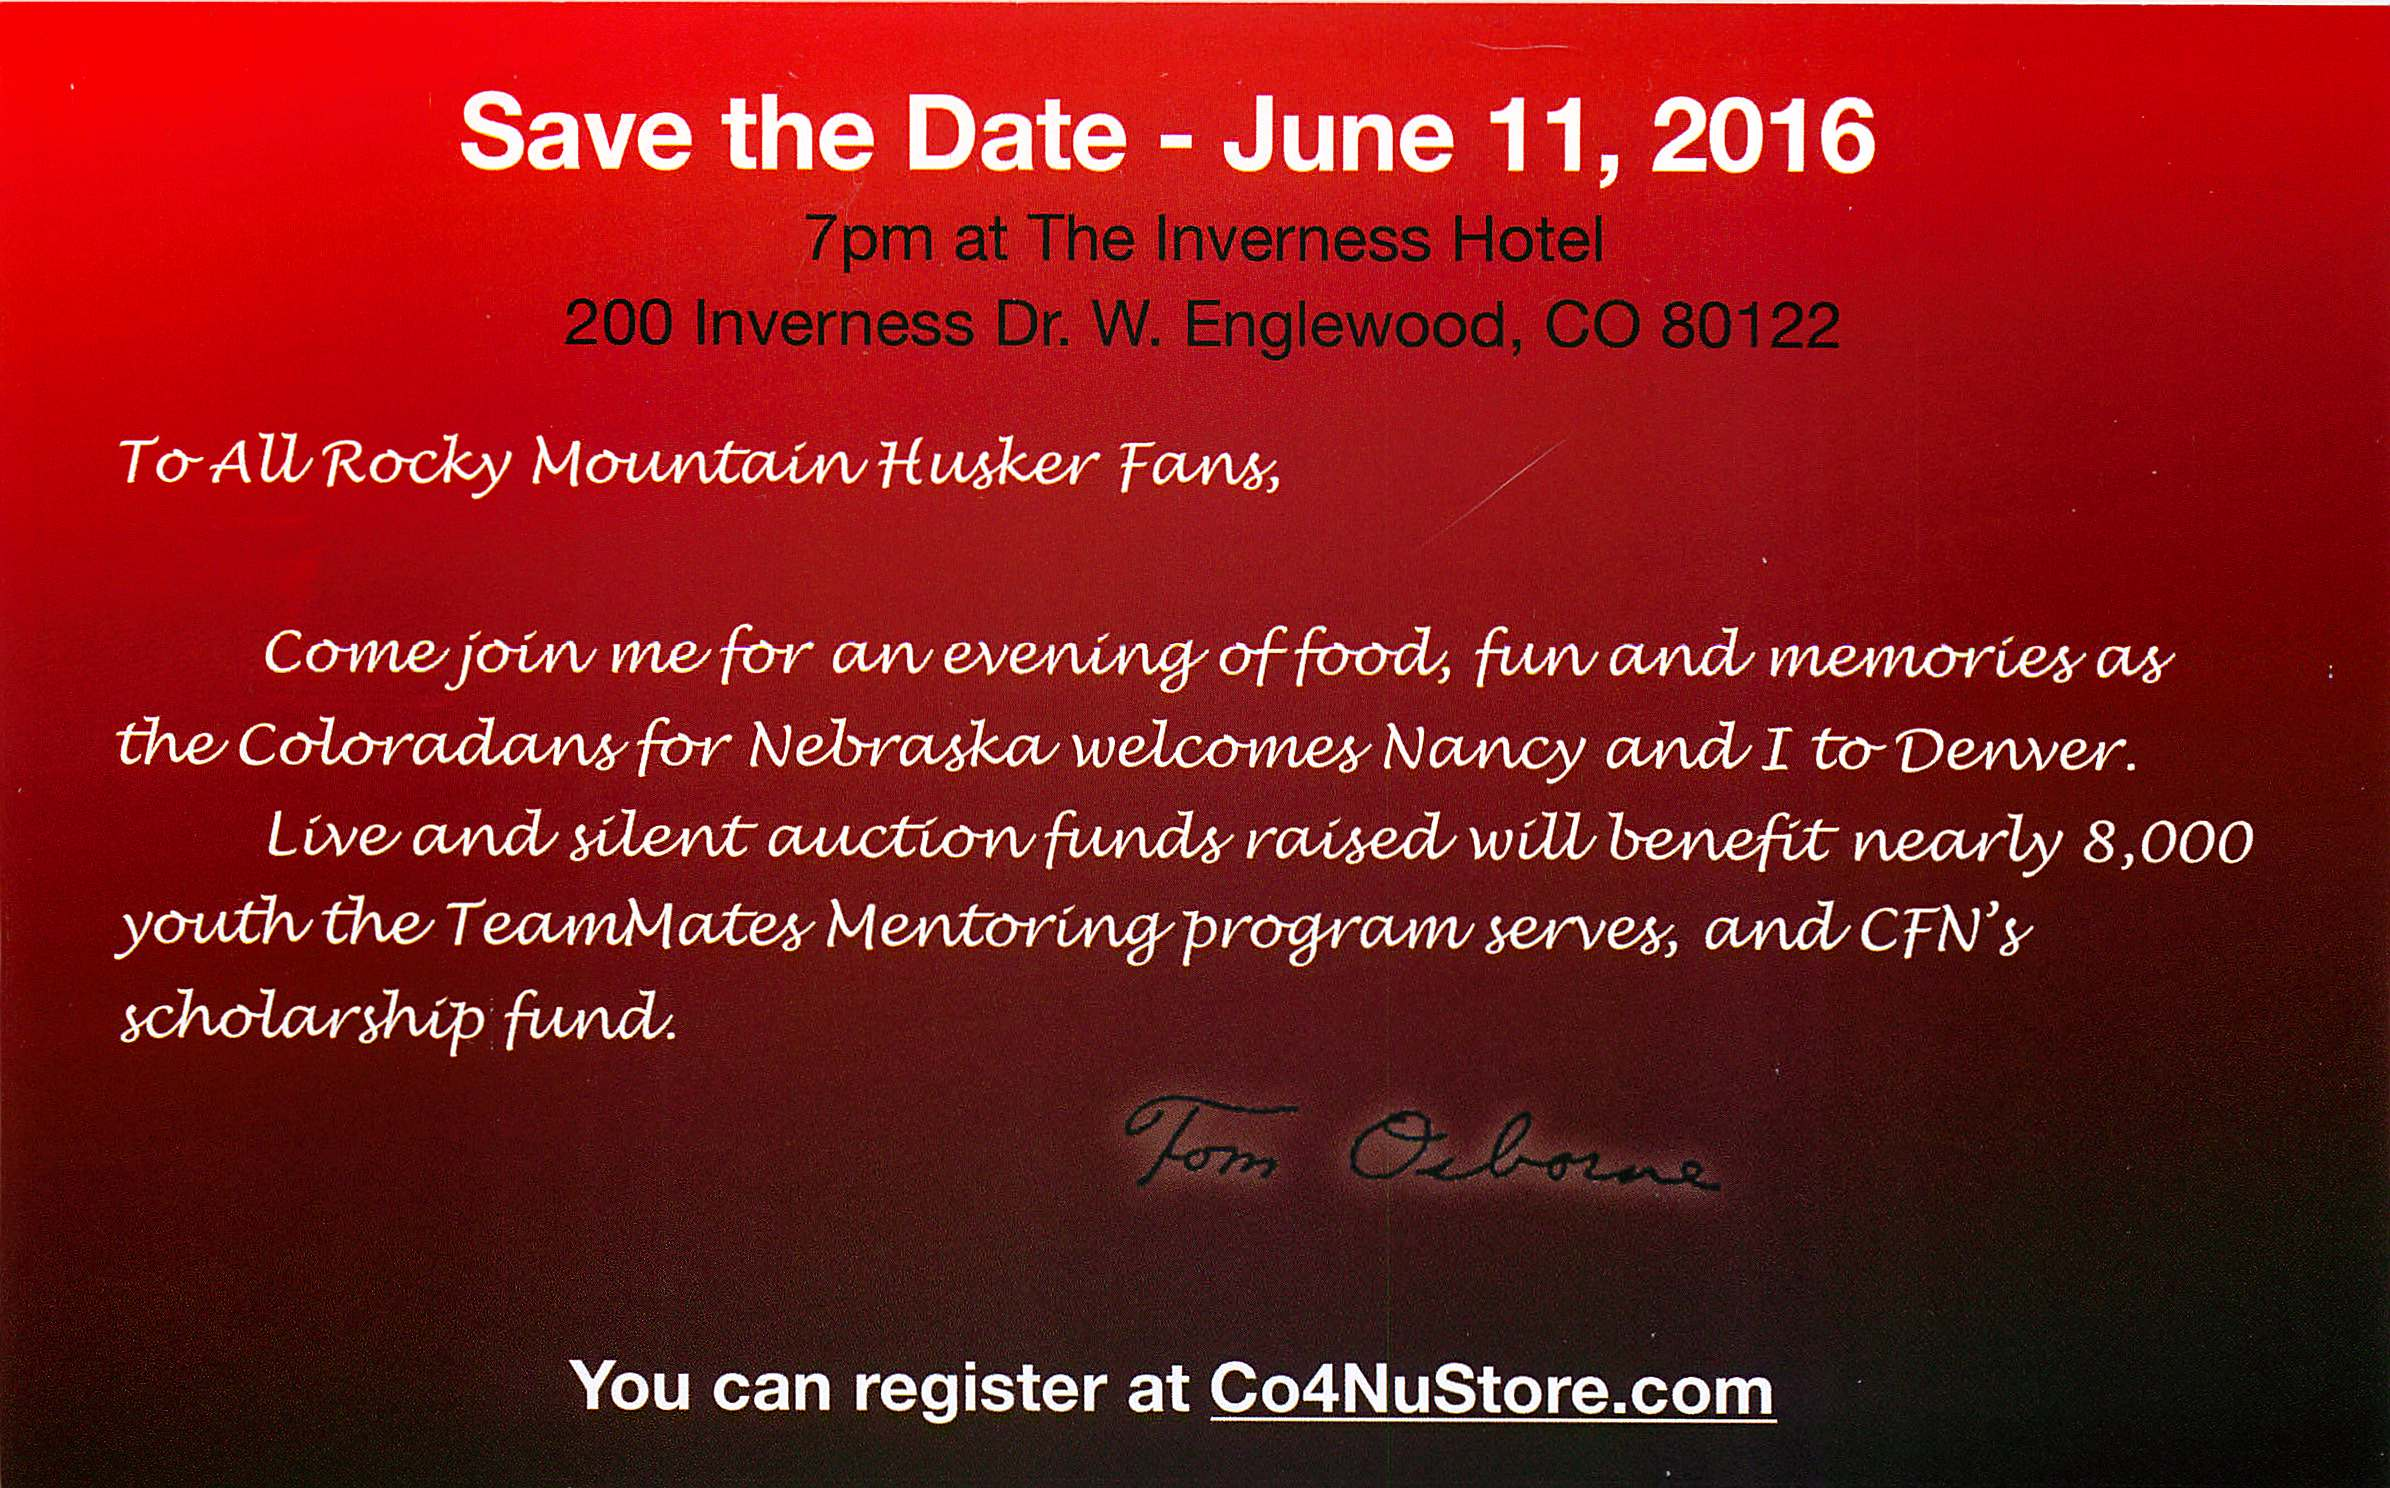 Tom Osborne Invite